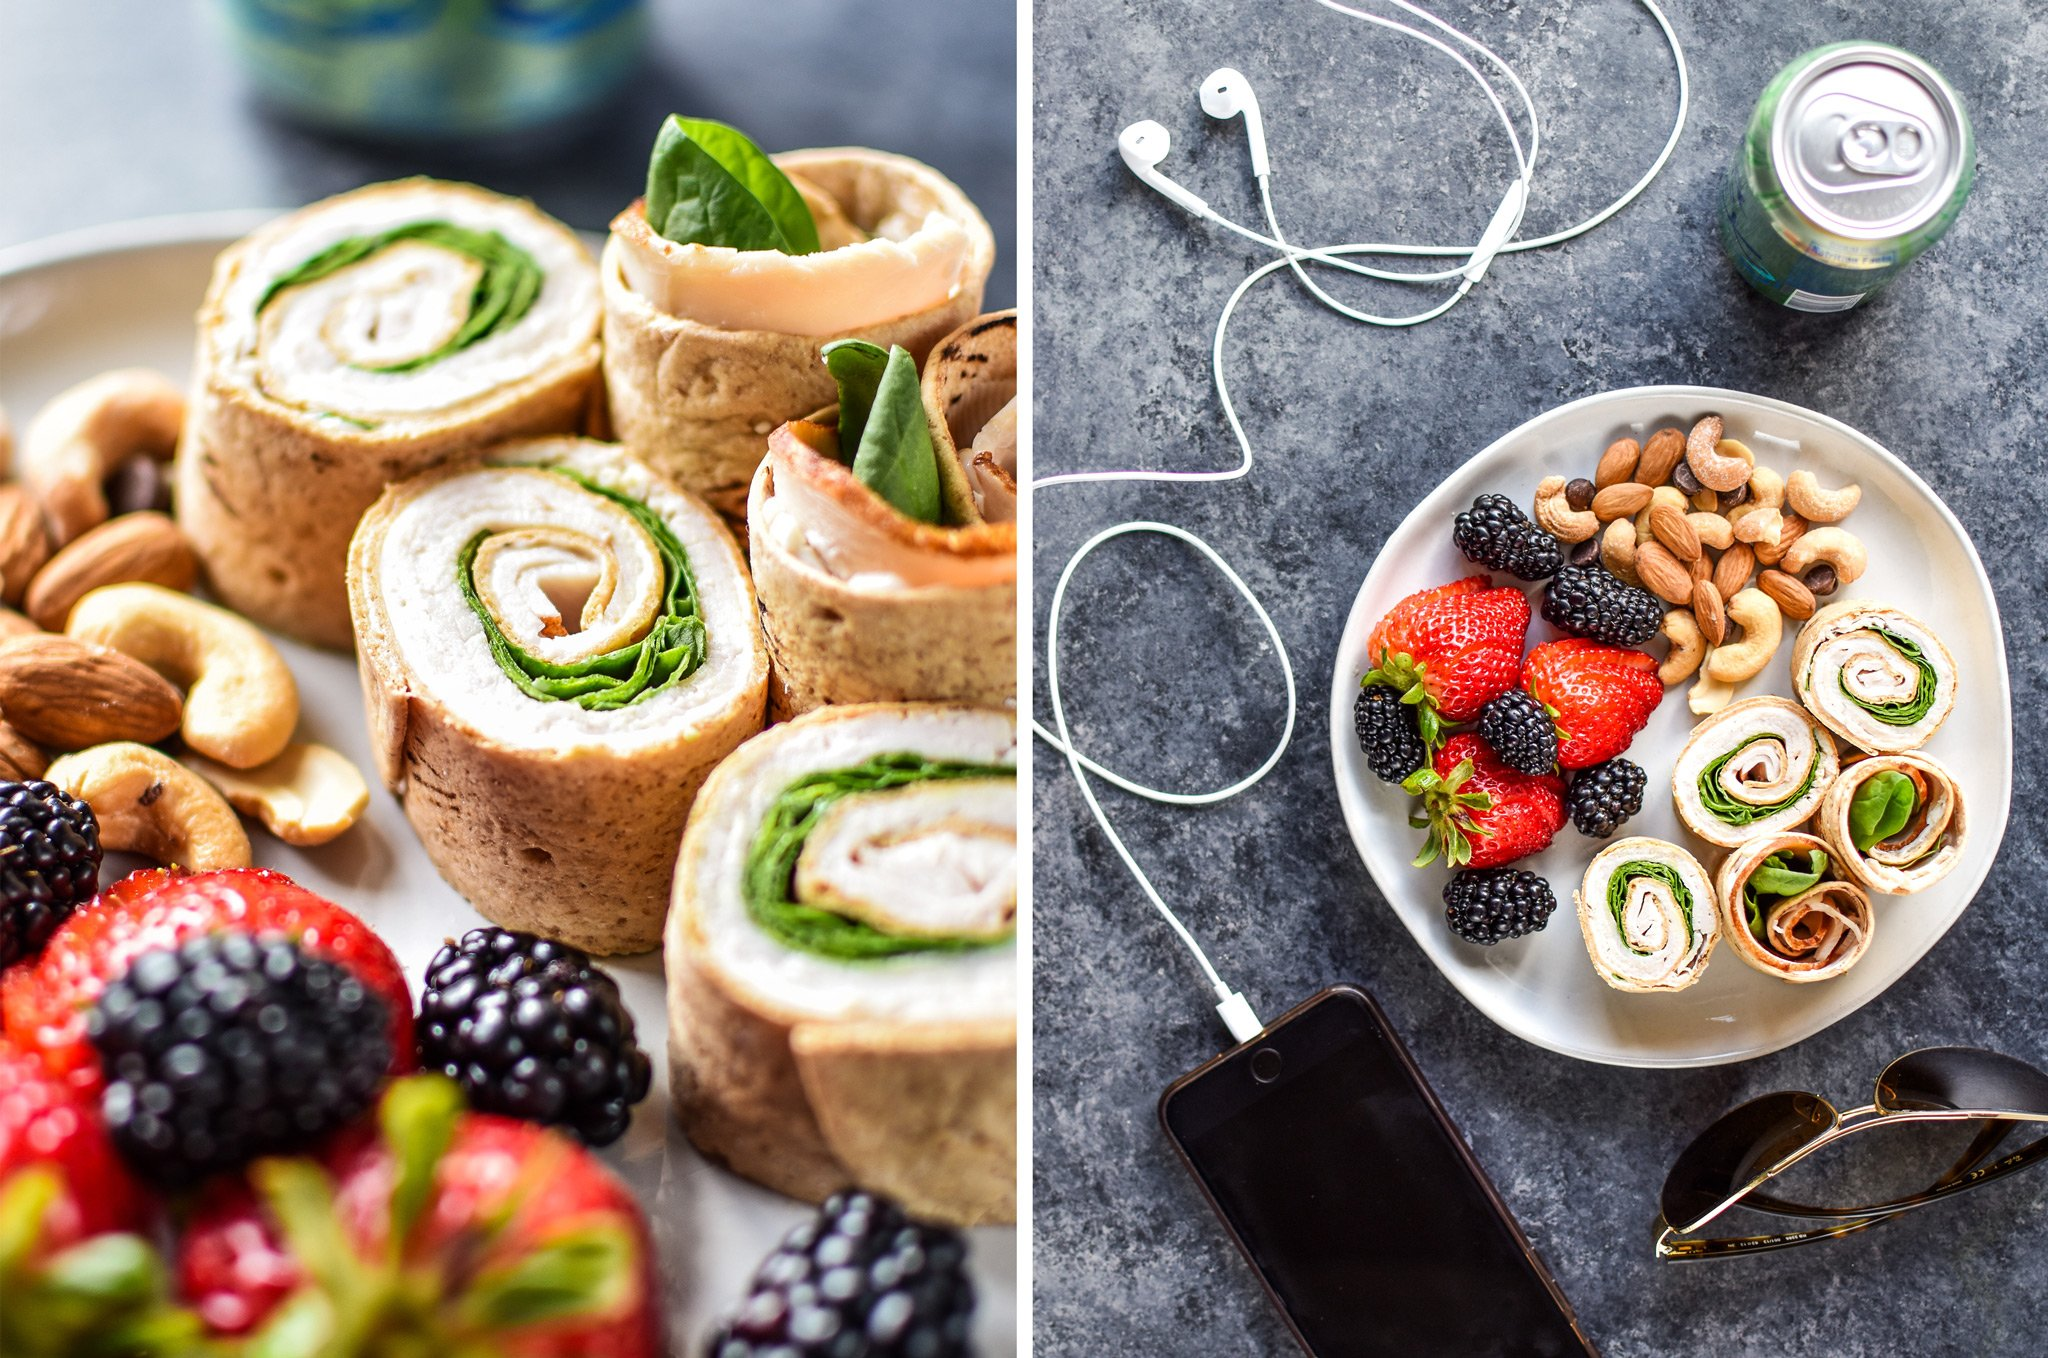 Left: Turkey pinwheels on a place with berries and nuts. Right: Top view of a lunch plate of pinwheels, nuts and fruit with a La Croix and iPhone music (summer vibes).